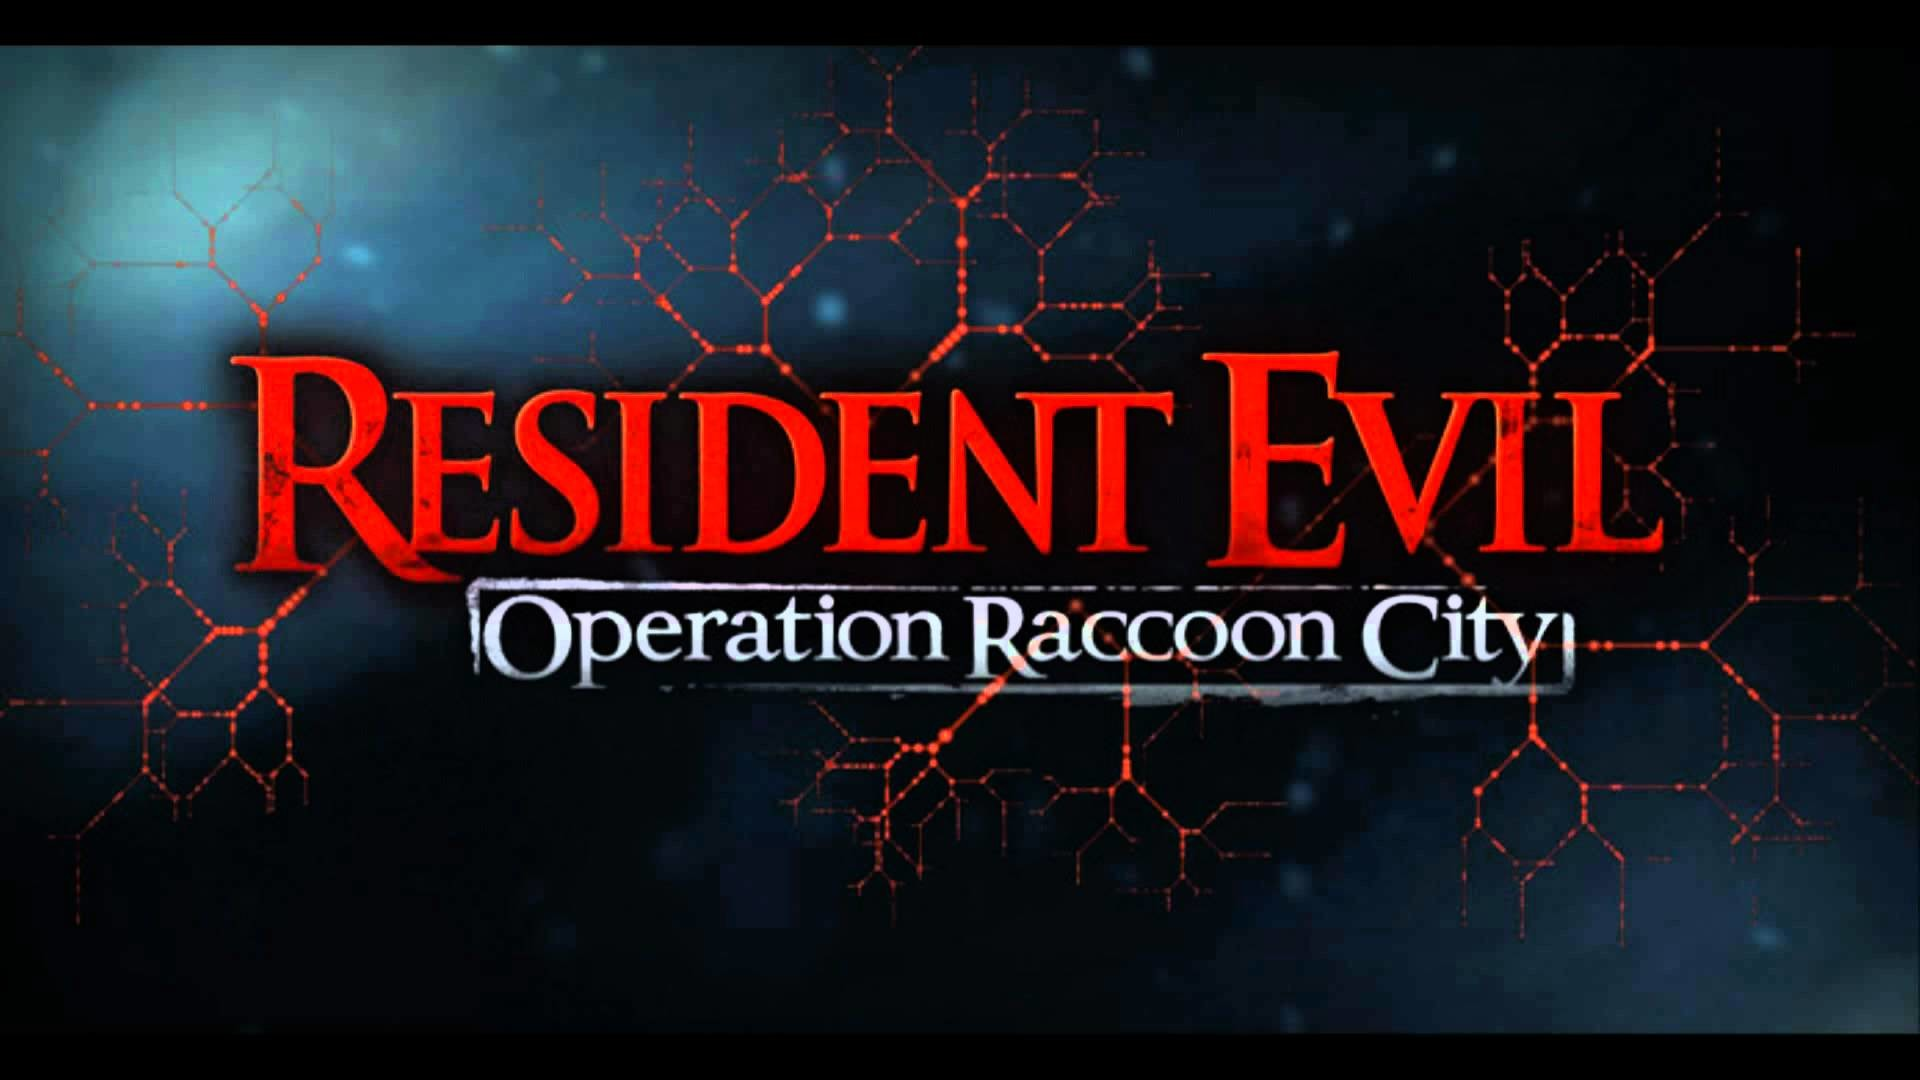 1920x1080 Resident Evil - Operation Raccoon City USS Wolfpack menu theme